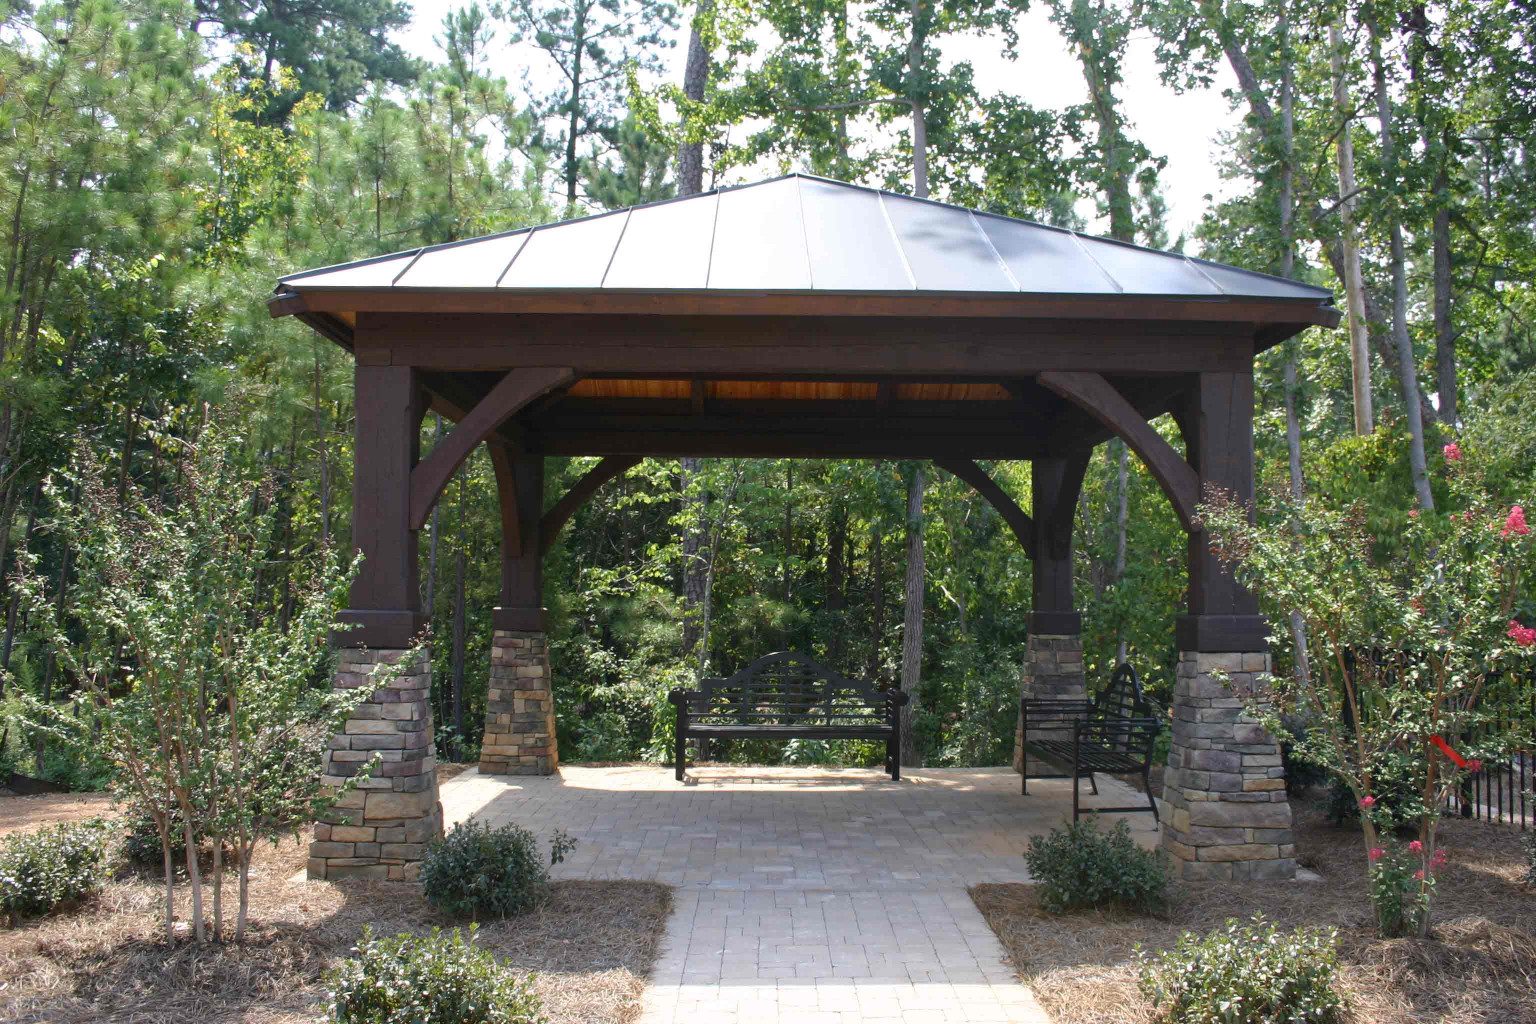 This Timber Frame Gazebo Kit with wood beams, wood posts, and wood braces is a perfect way to add shade.